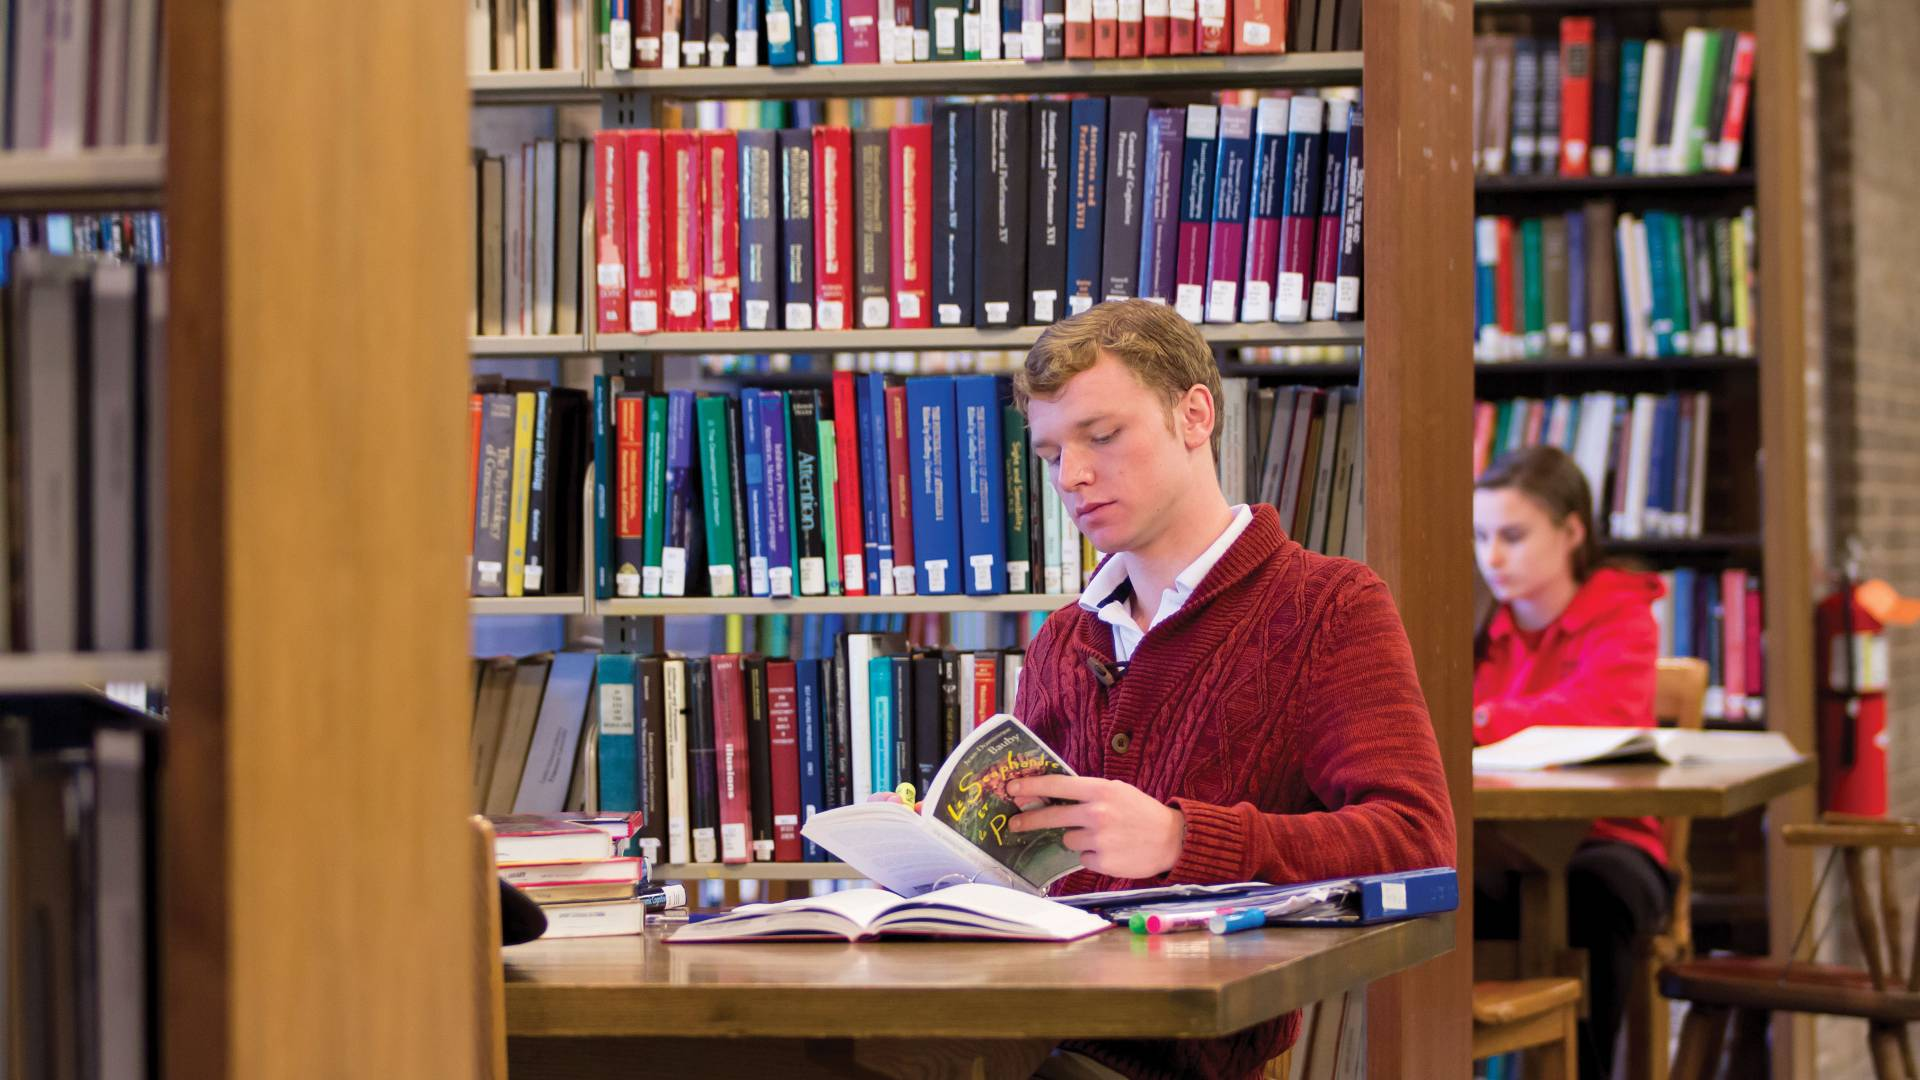 Student works in library